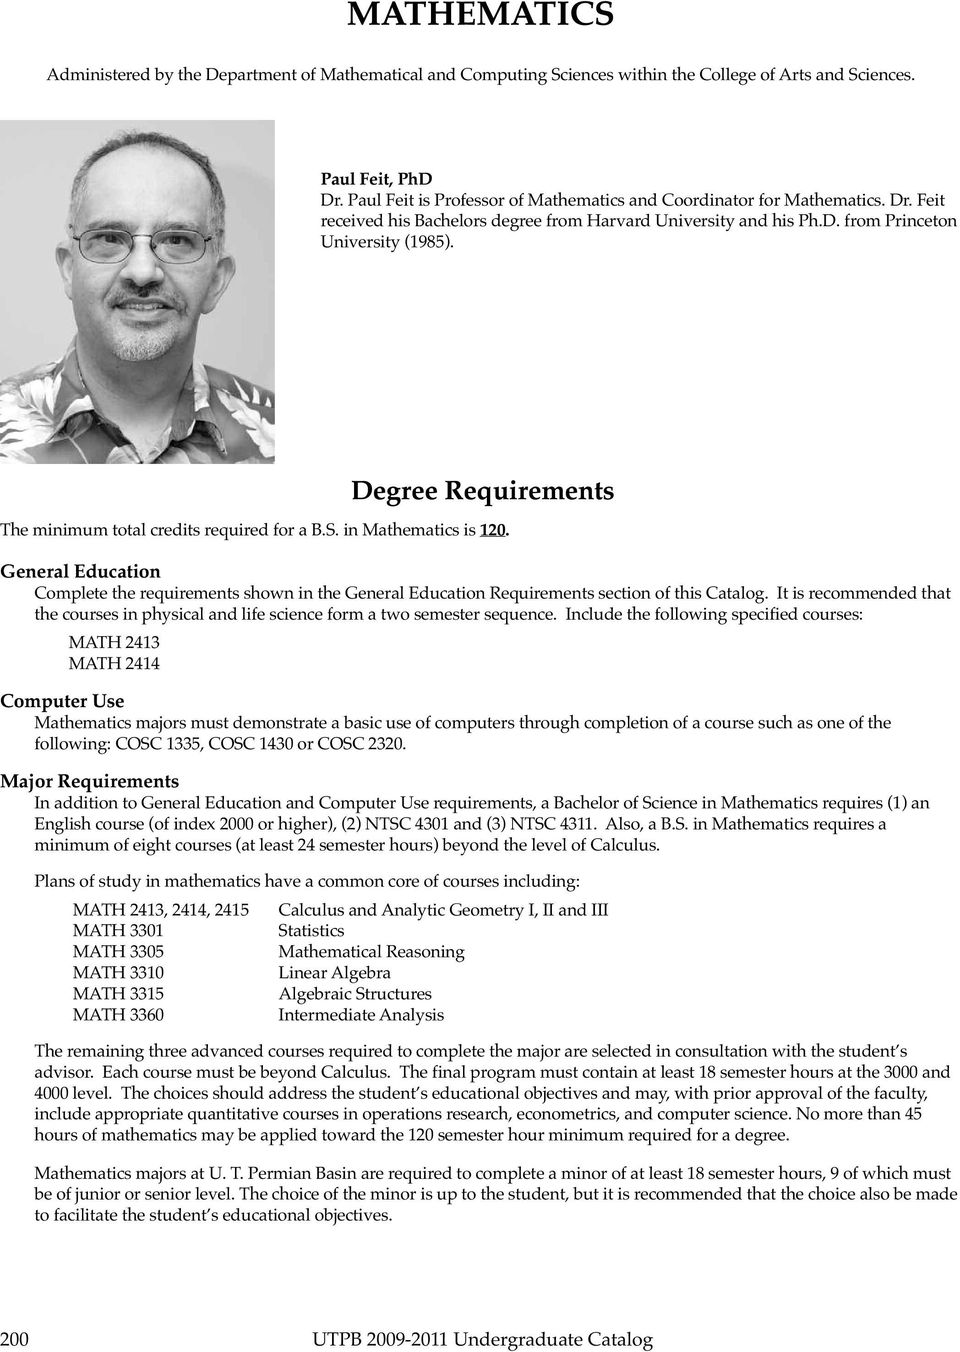 Degree Requirements The minimum total credits required for a B.S. in Mathematics is 120.